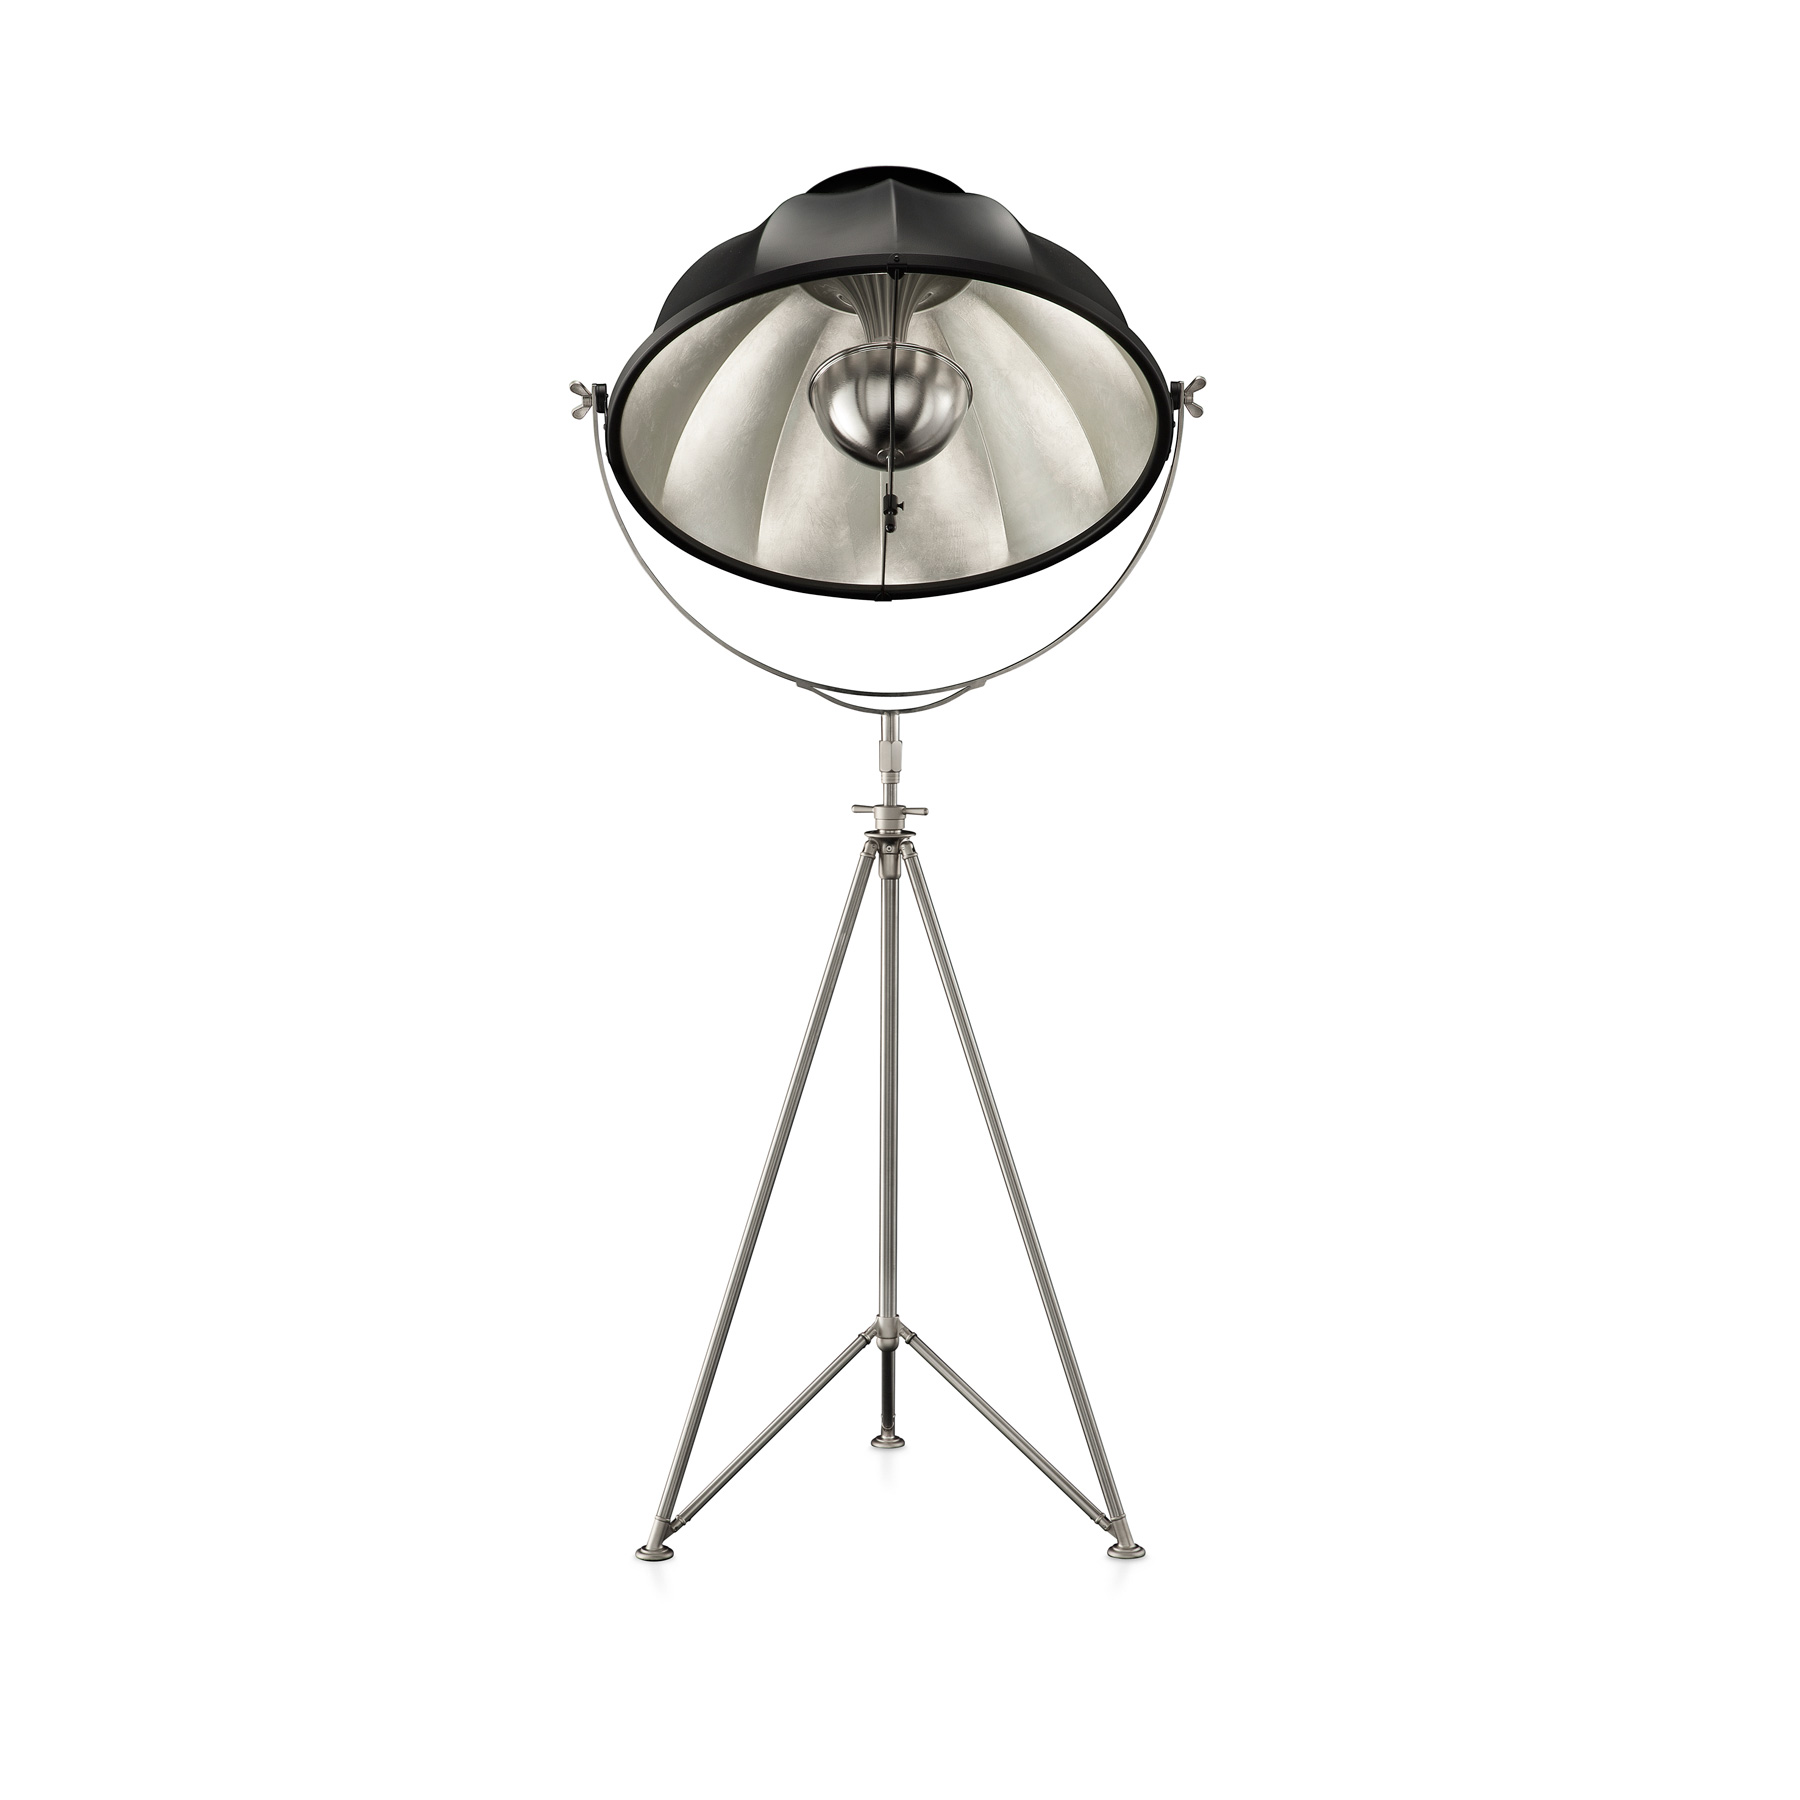 Studio 76 Tripod Floor Lamp by Venetia Studium | LC-